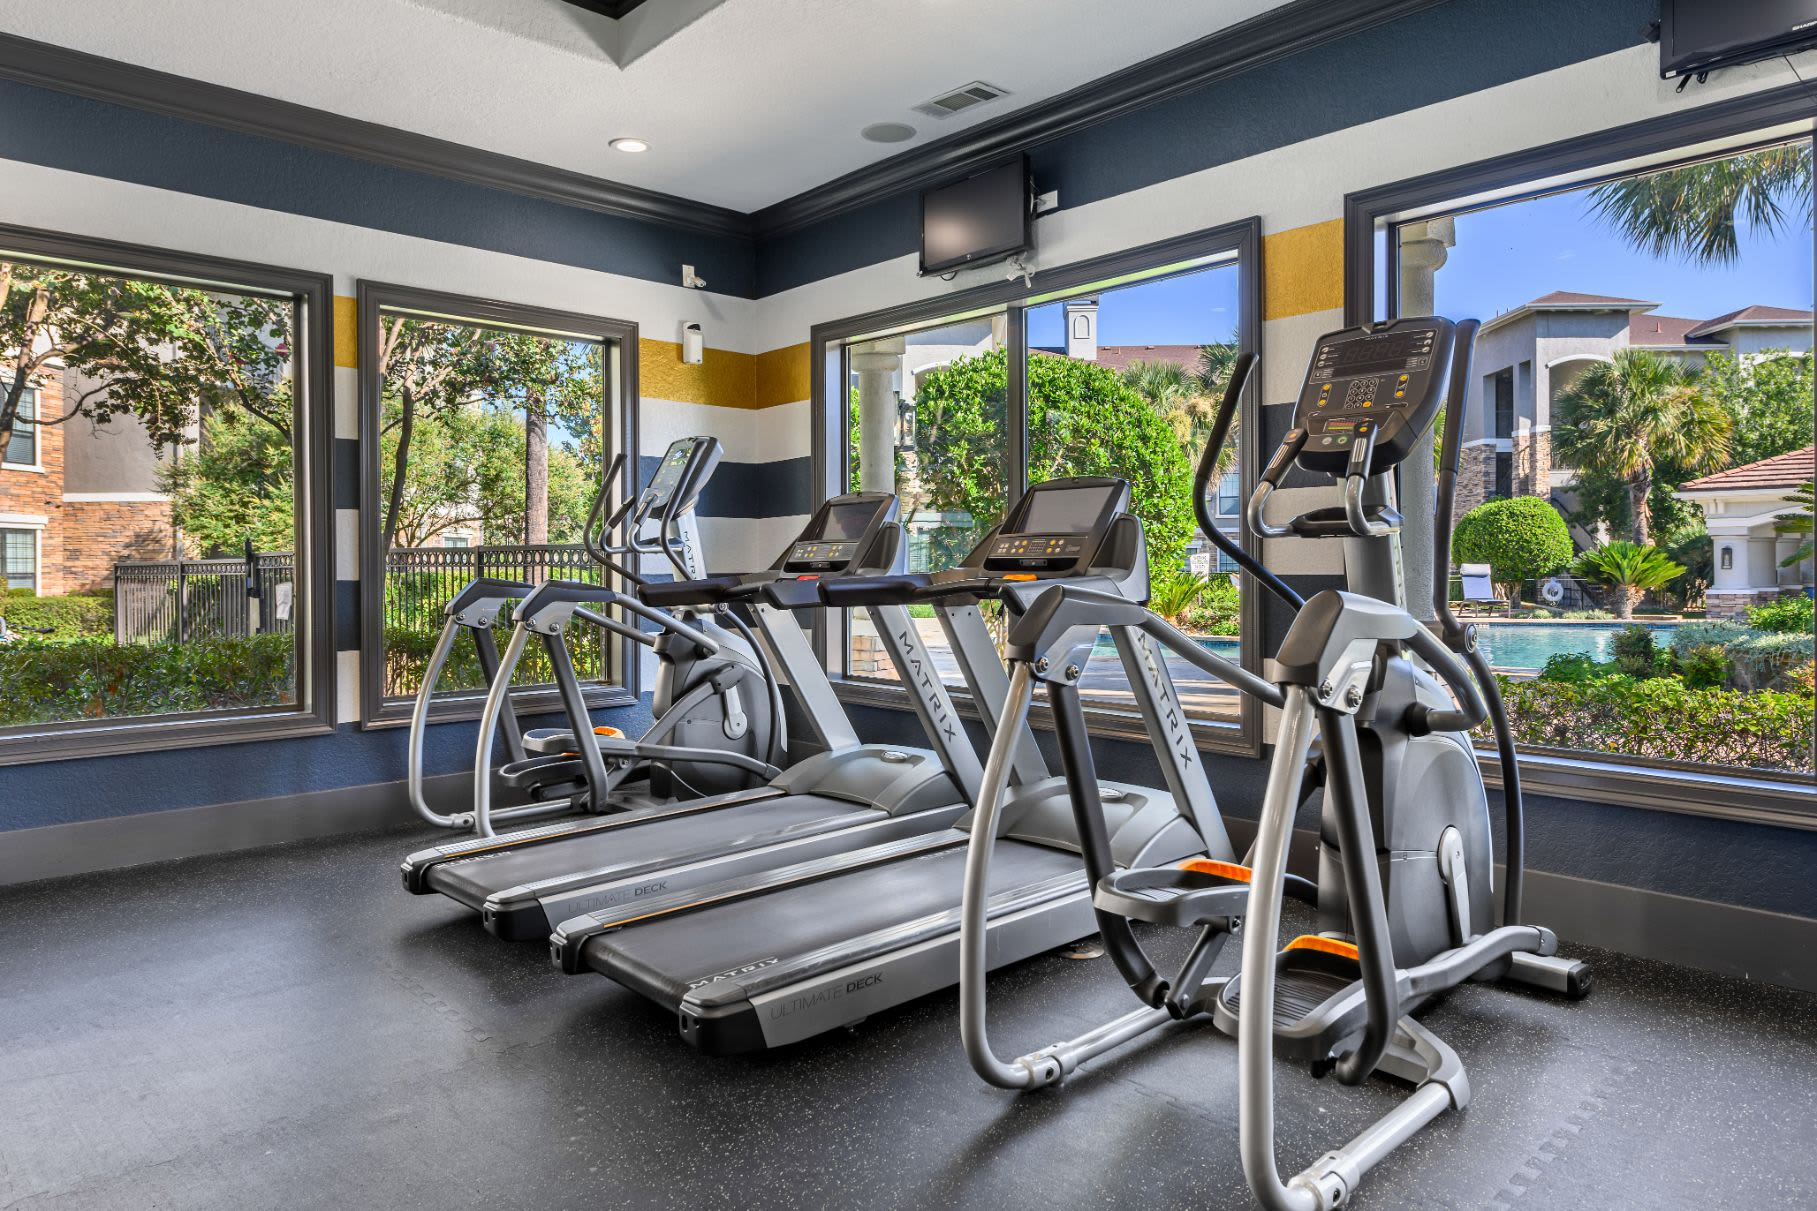 Treadmills in the fitness center at Marquis Lakeline Station in Austin, Texas